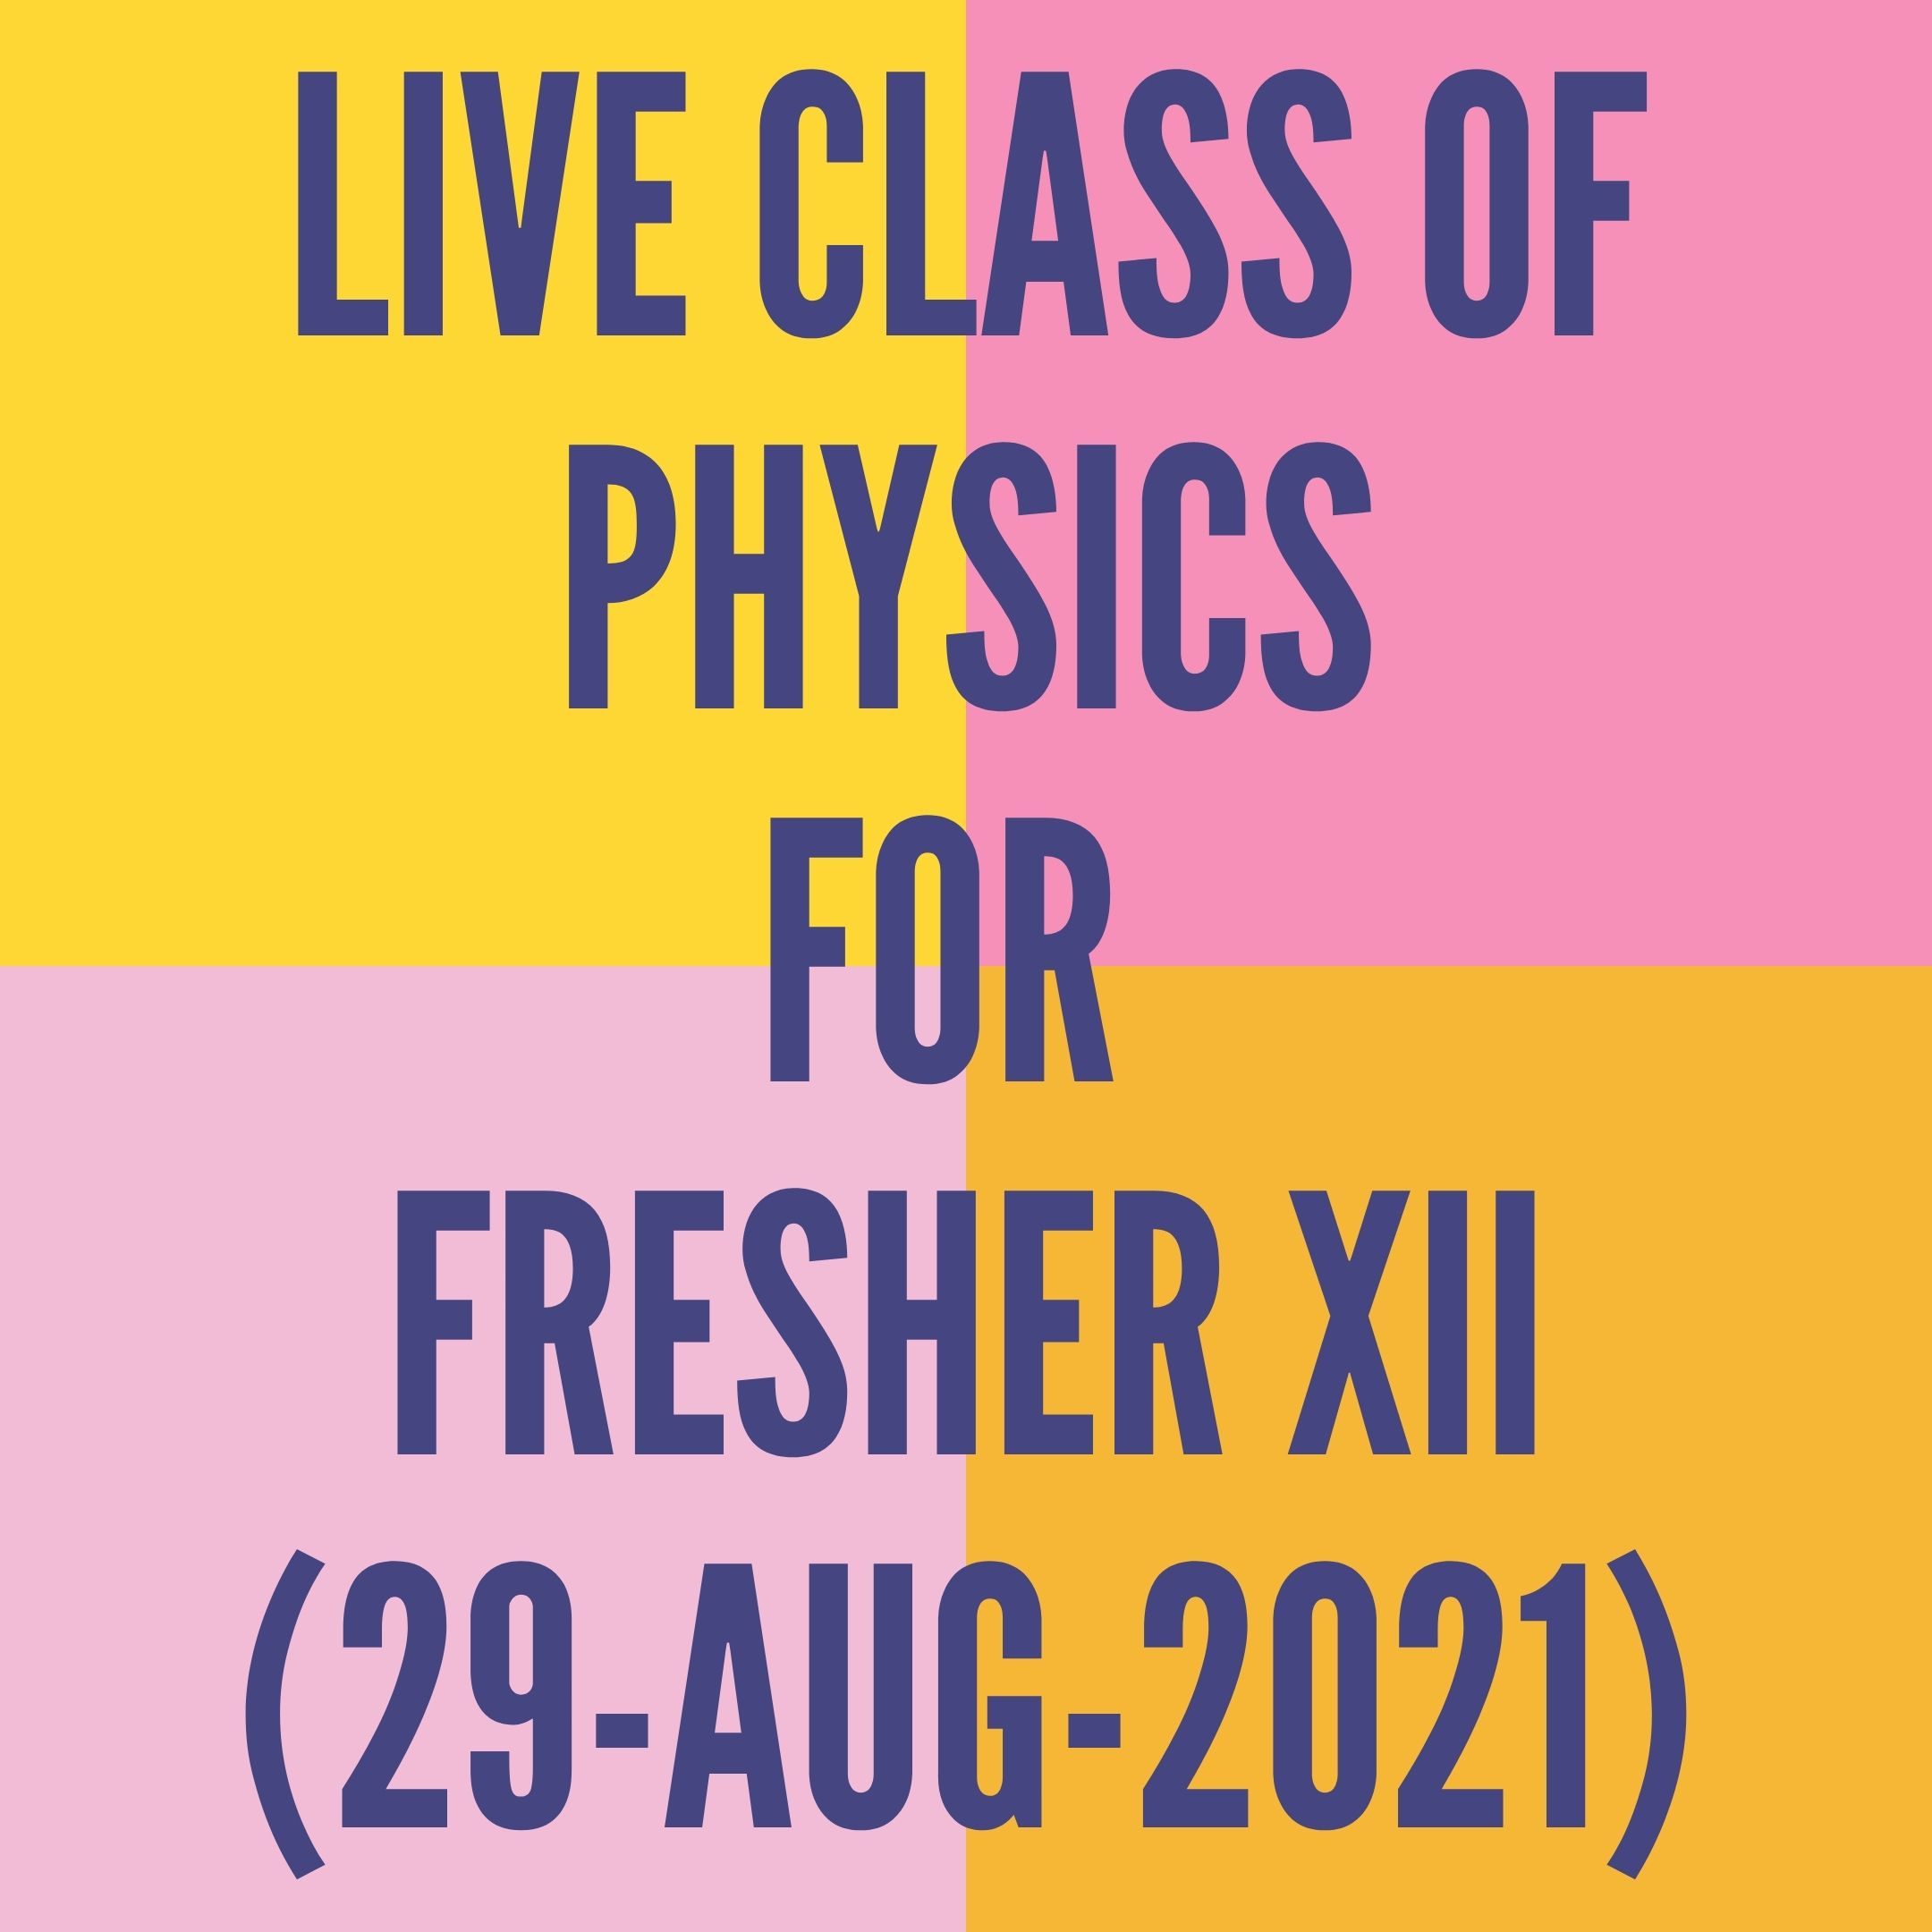 LIVE CLASS OF PHYSICS FOR FRESHER XII (29-AUG-2021) MAGNETIC FORCE ON MOVING CHARGE PARTICLE